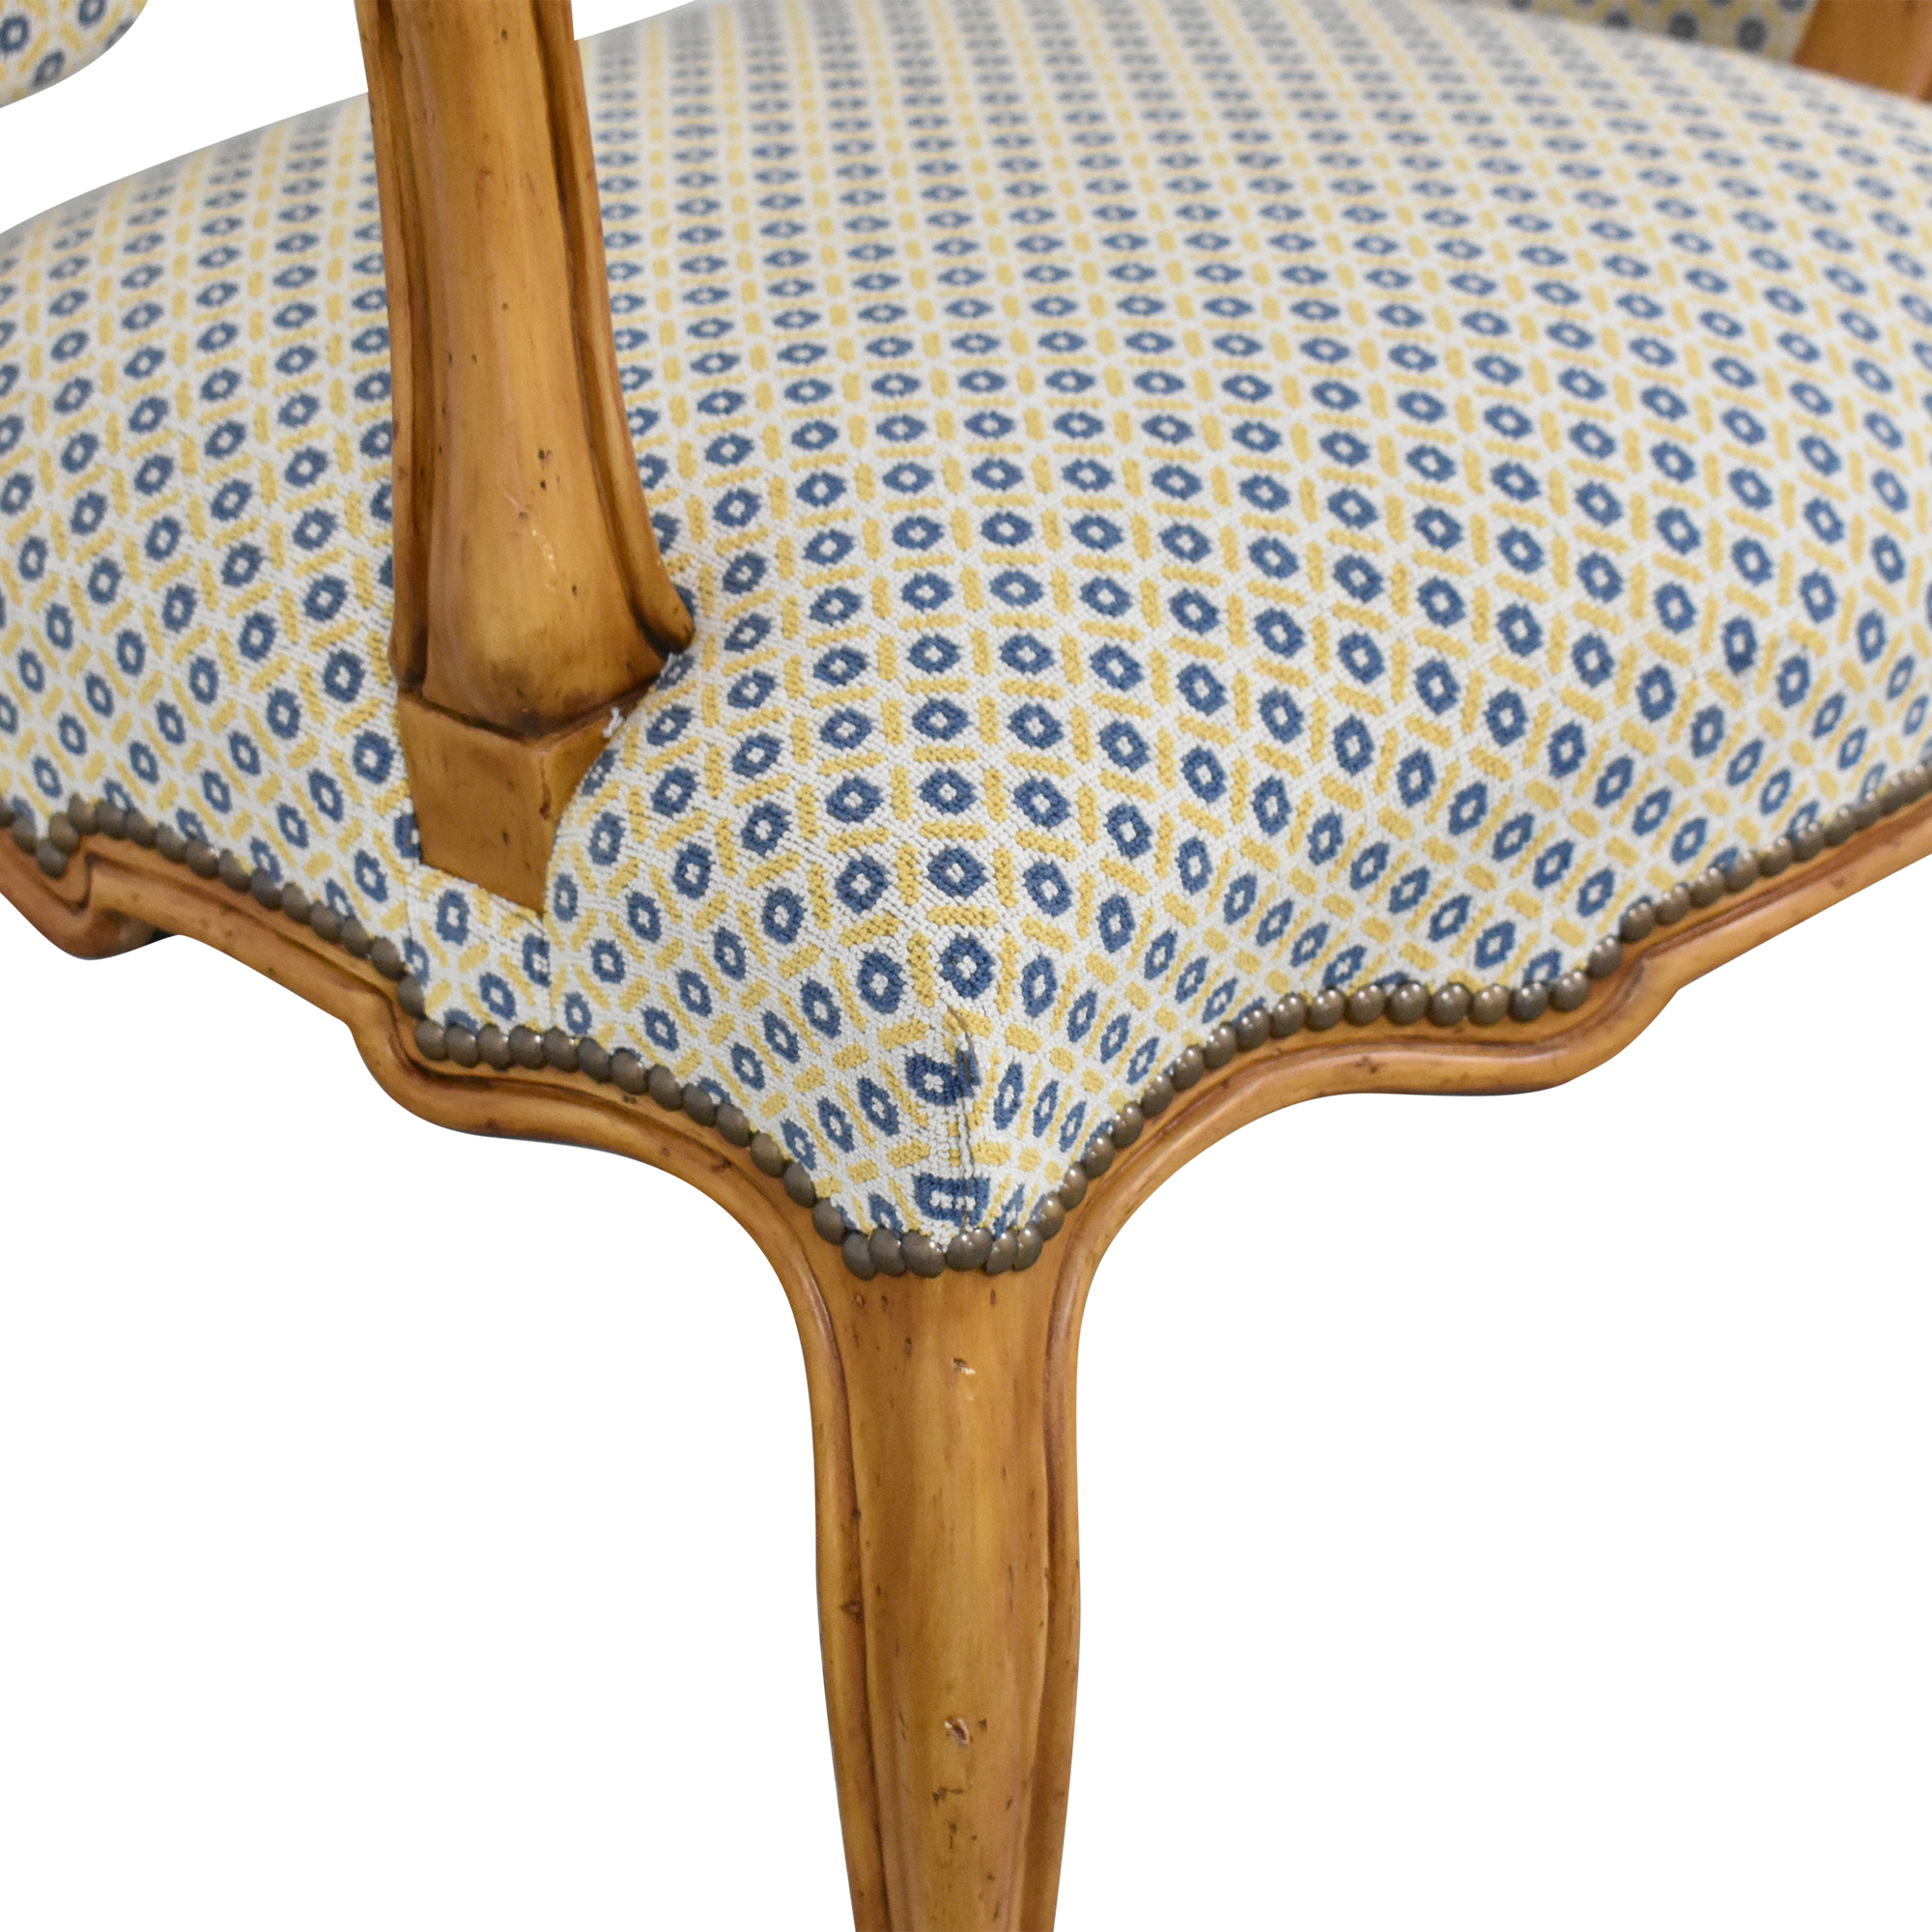 Minton-Spidell Minton-Spidell Regence Dining Chairs price